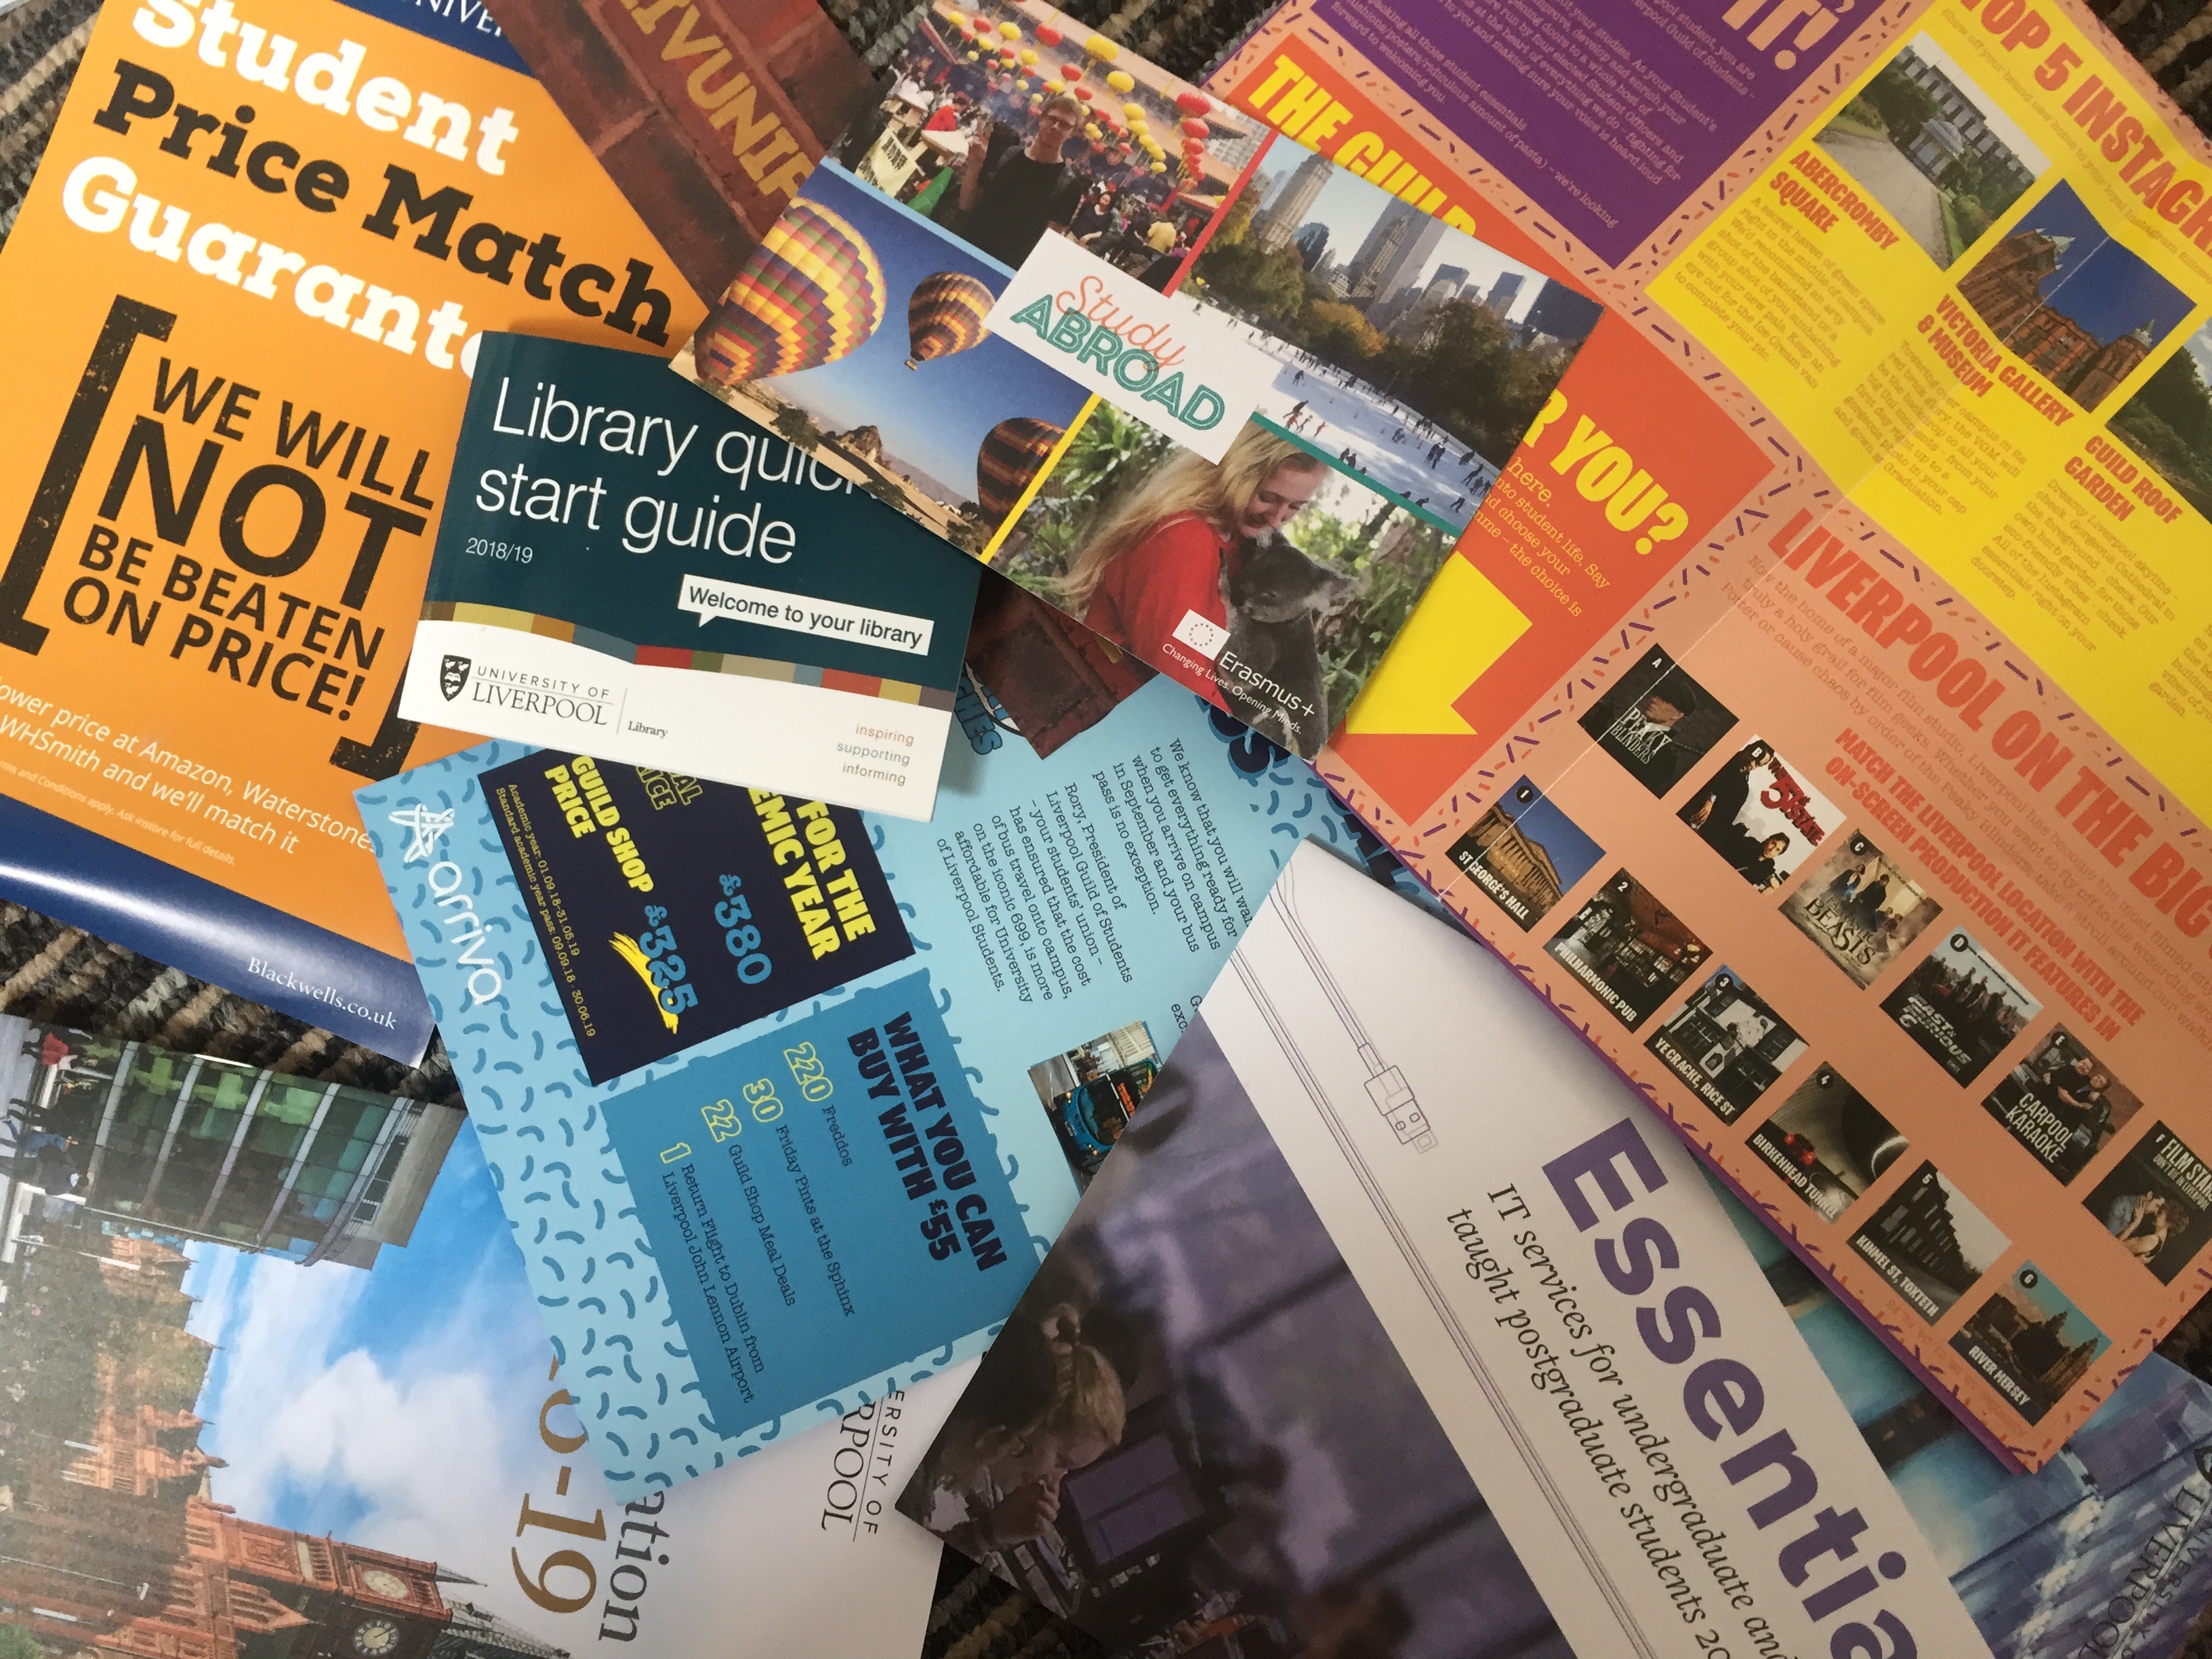 University brochures and leaflets